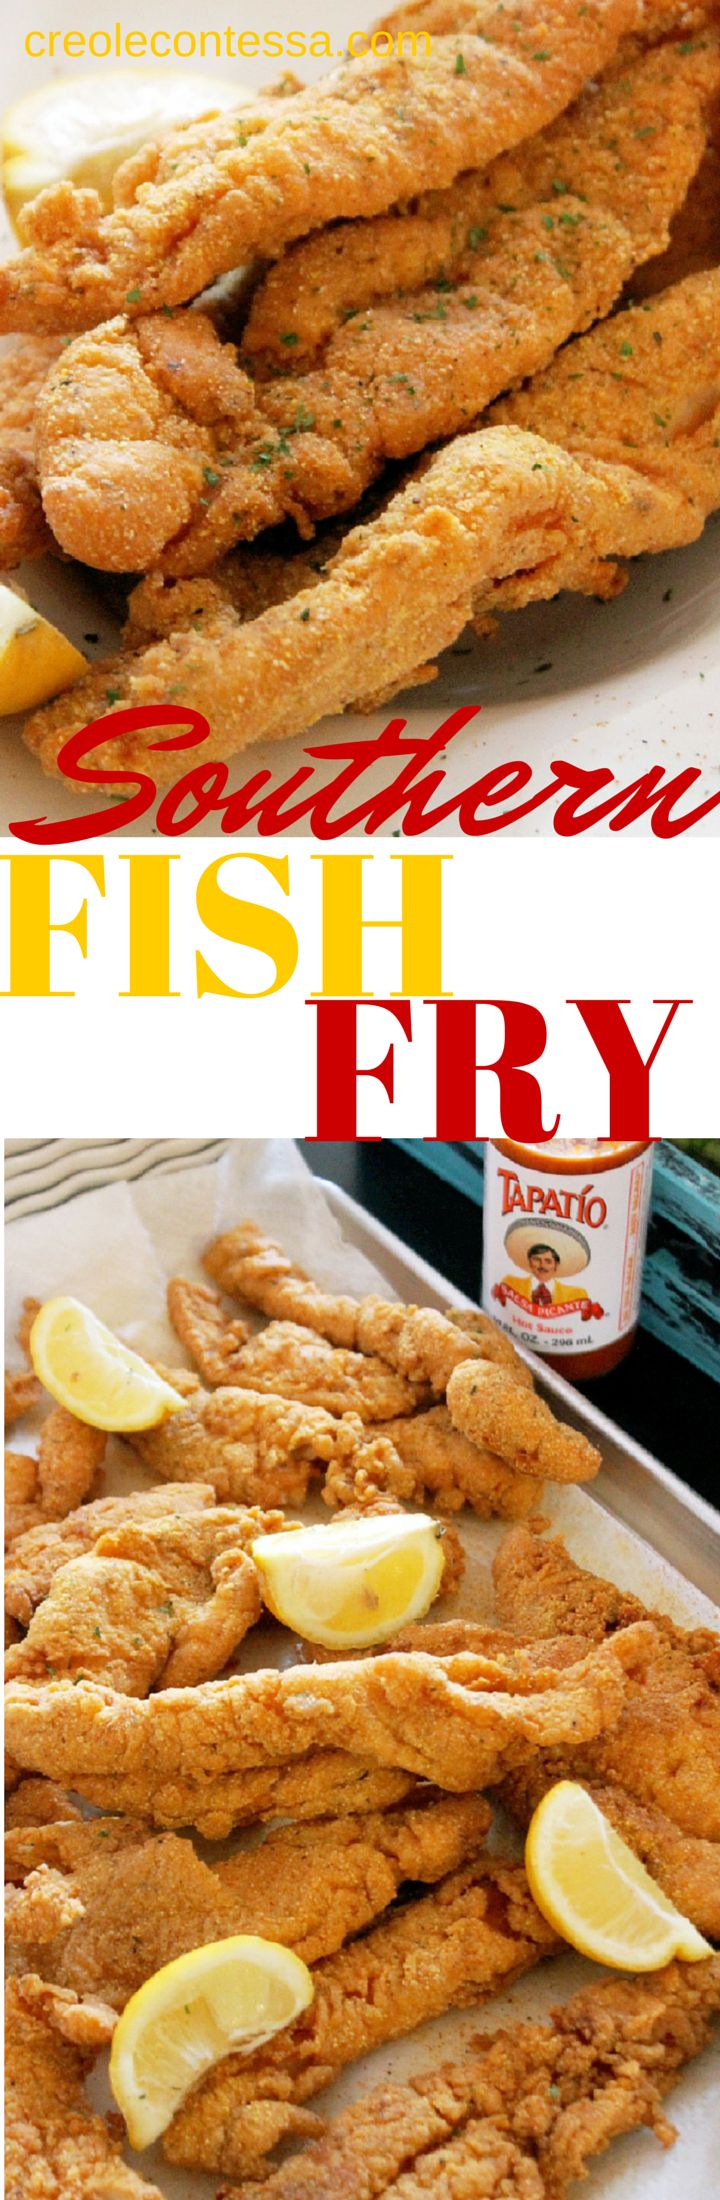 easy to cook fish recipe essay If you want to make a fancier white fish that's also pretty quick and easy to make, check out my fish recipe 54:49 easy simple white fish recipe cook fish.